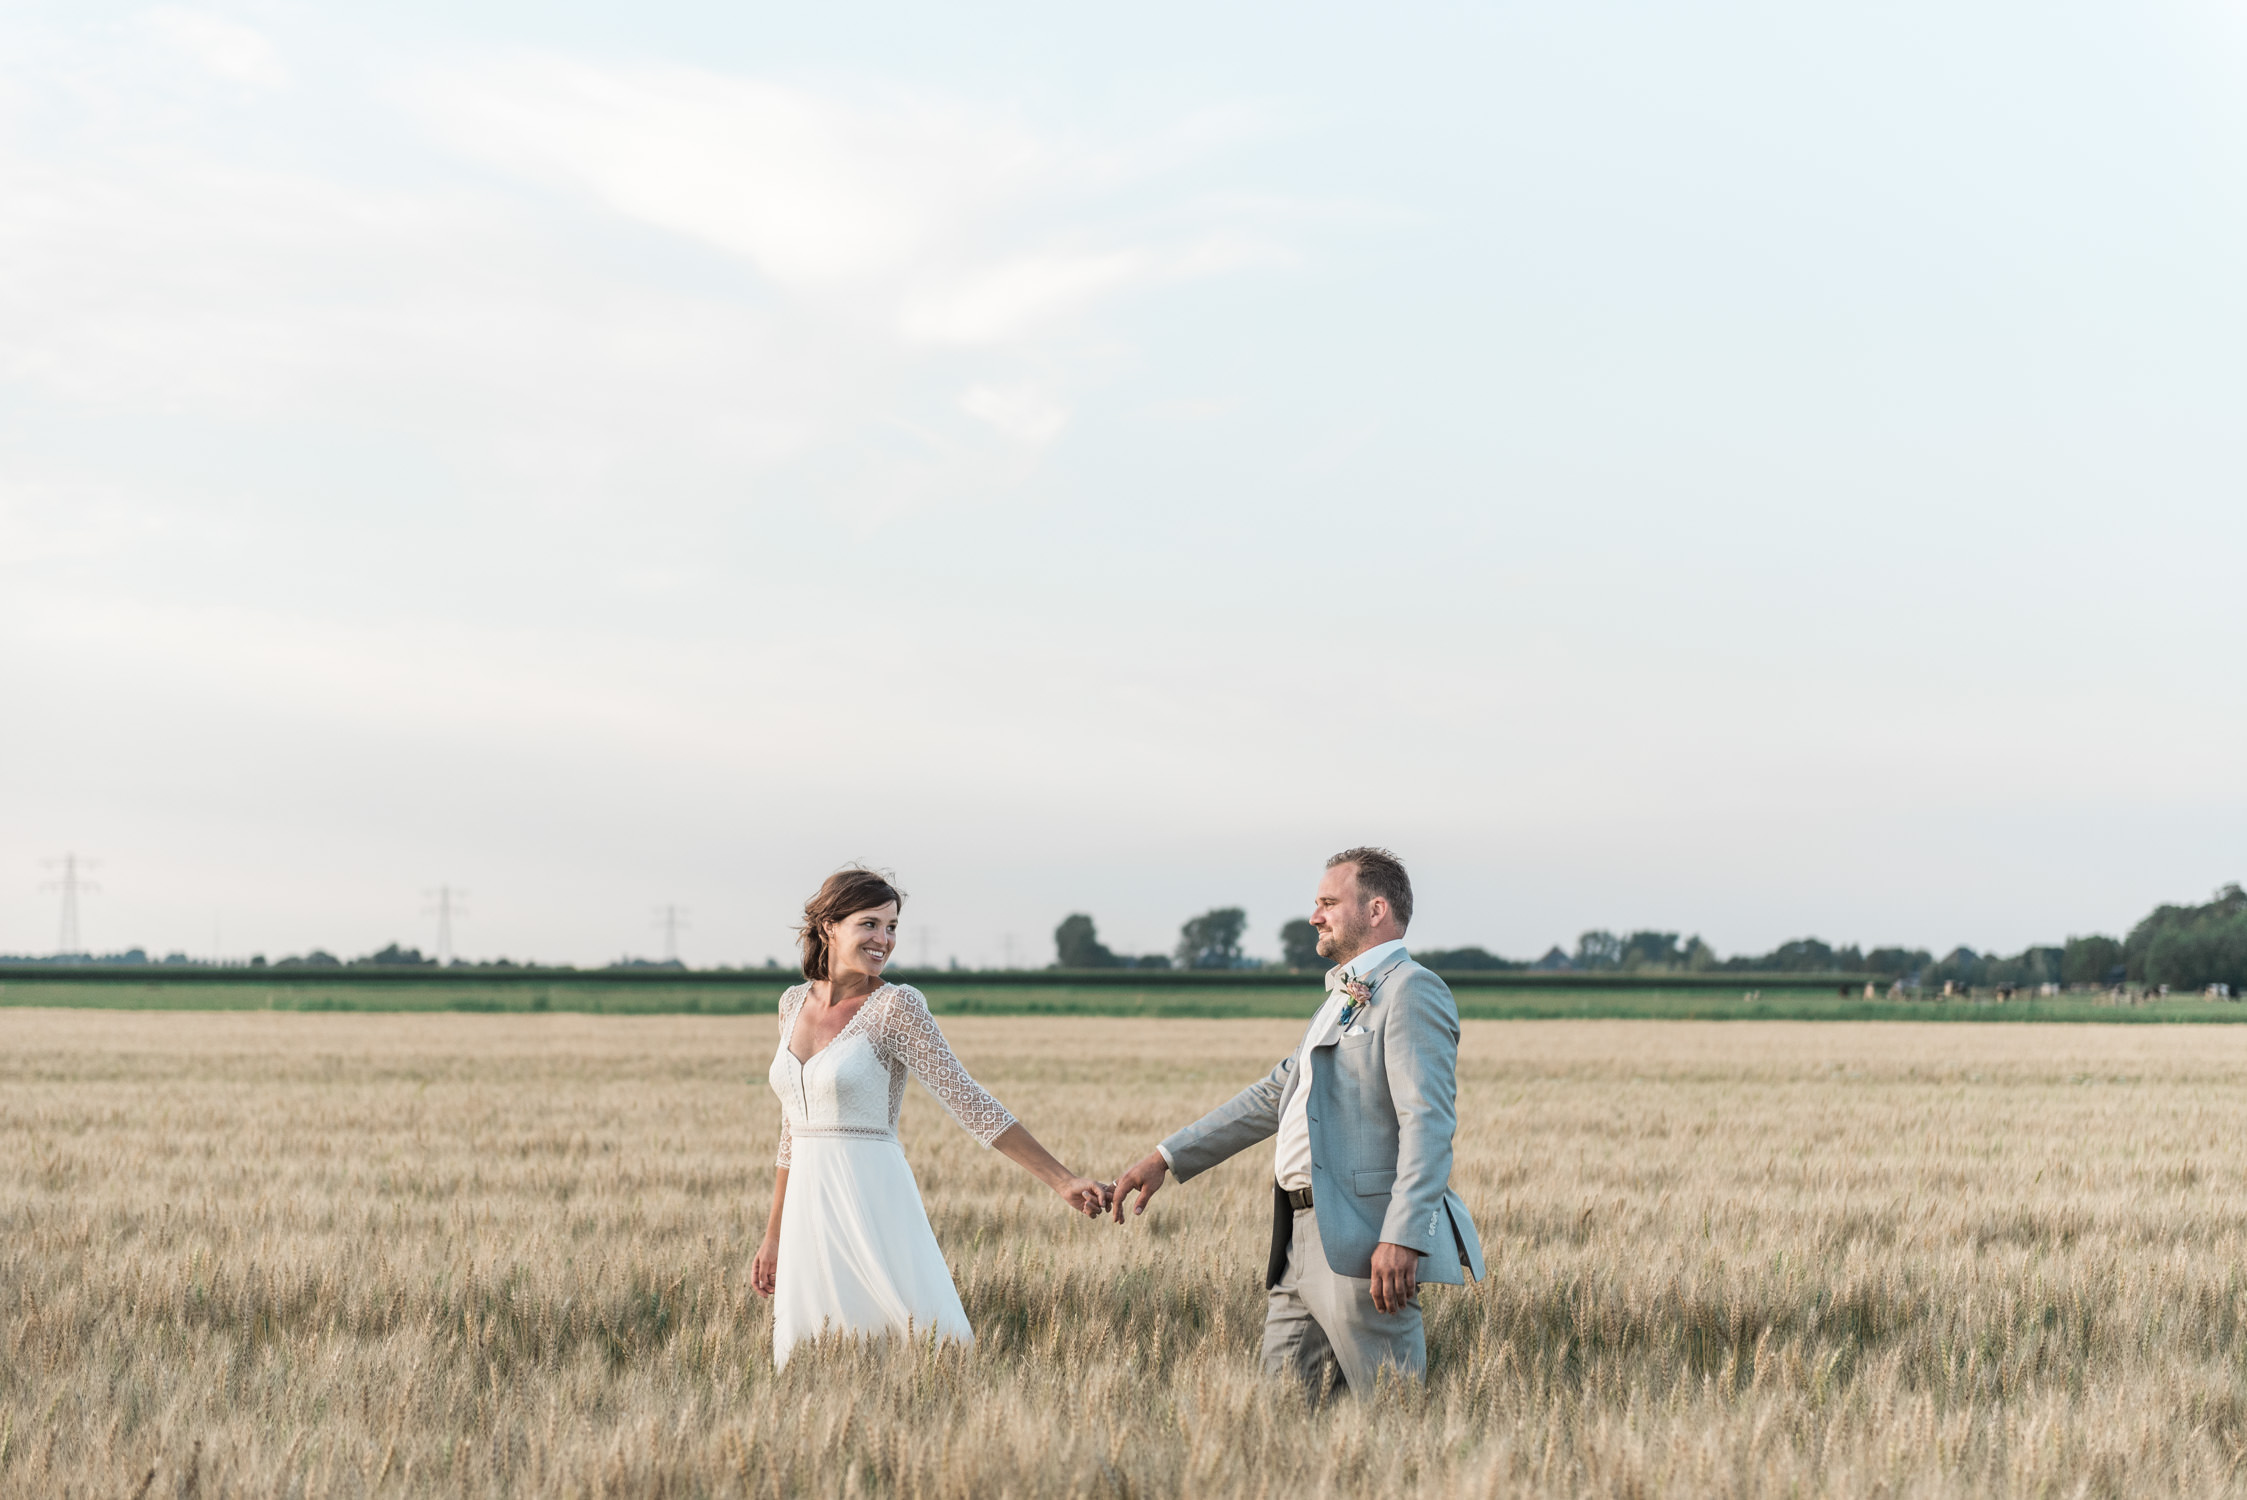 A bride and groom in a wheat field in the netherlands. Captured by Wit wedding photography close to Amsterdam